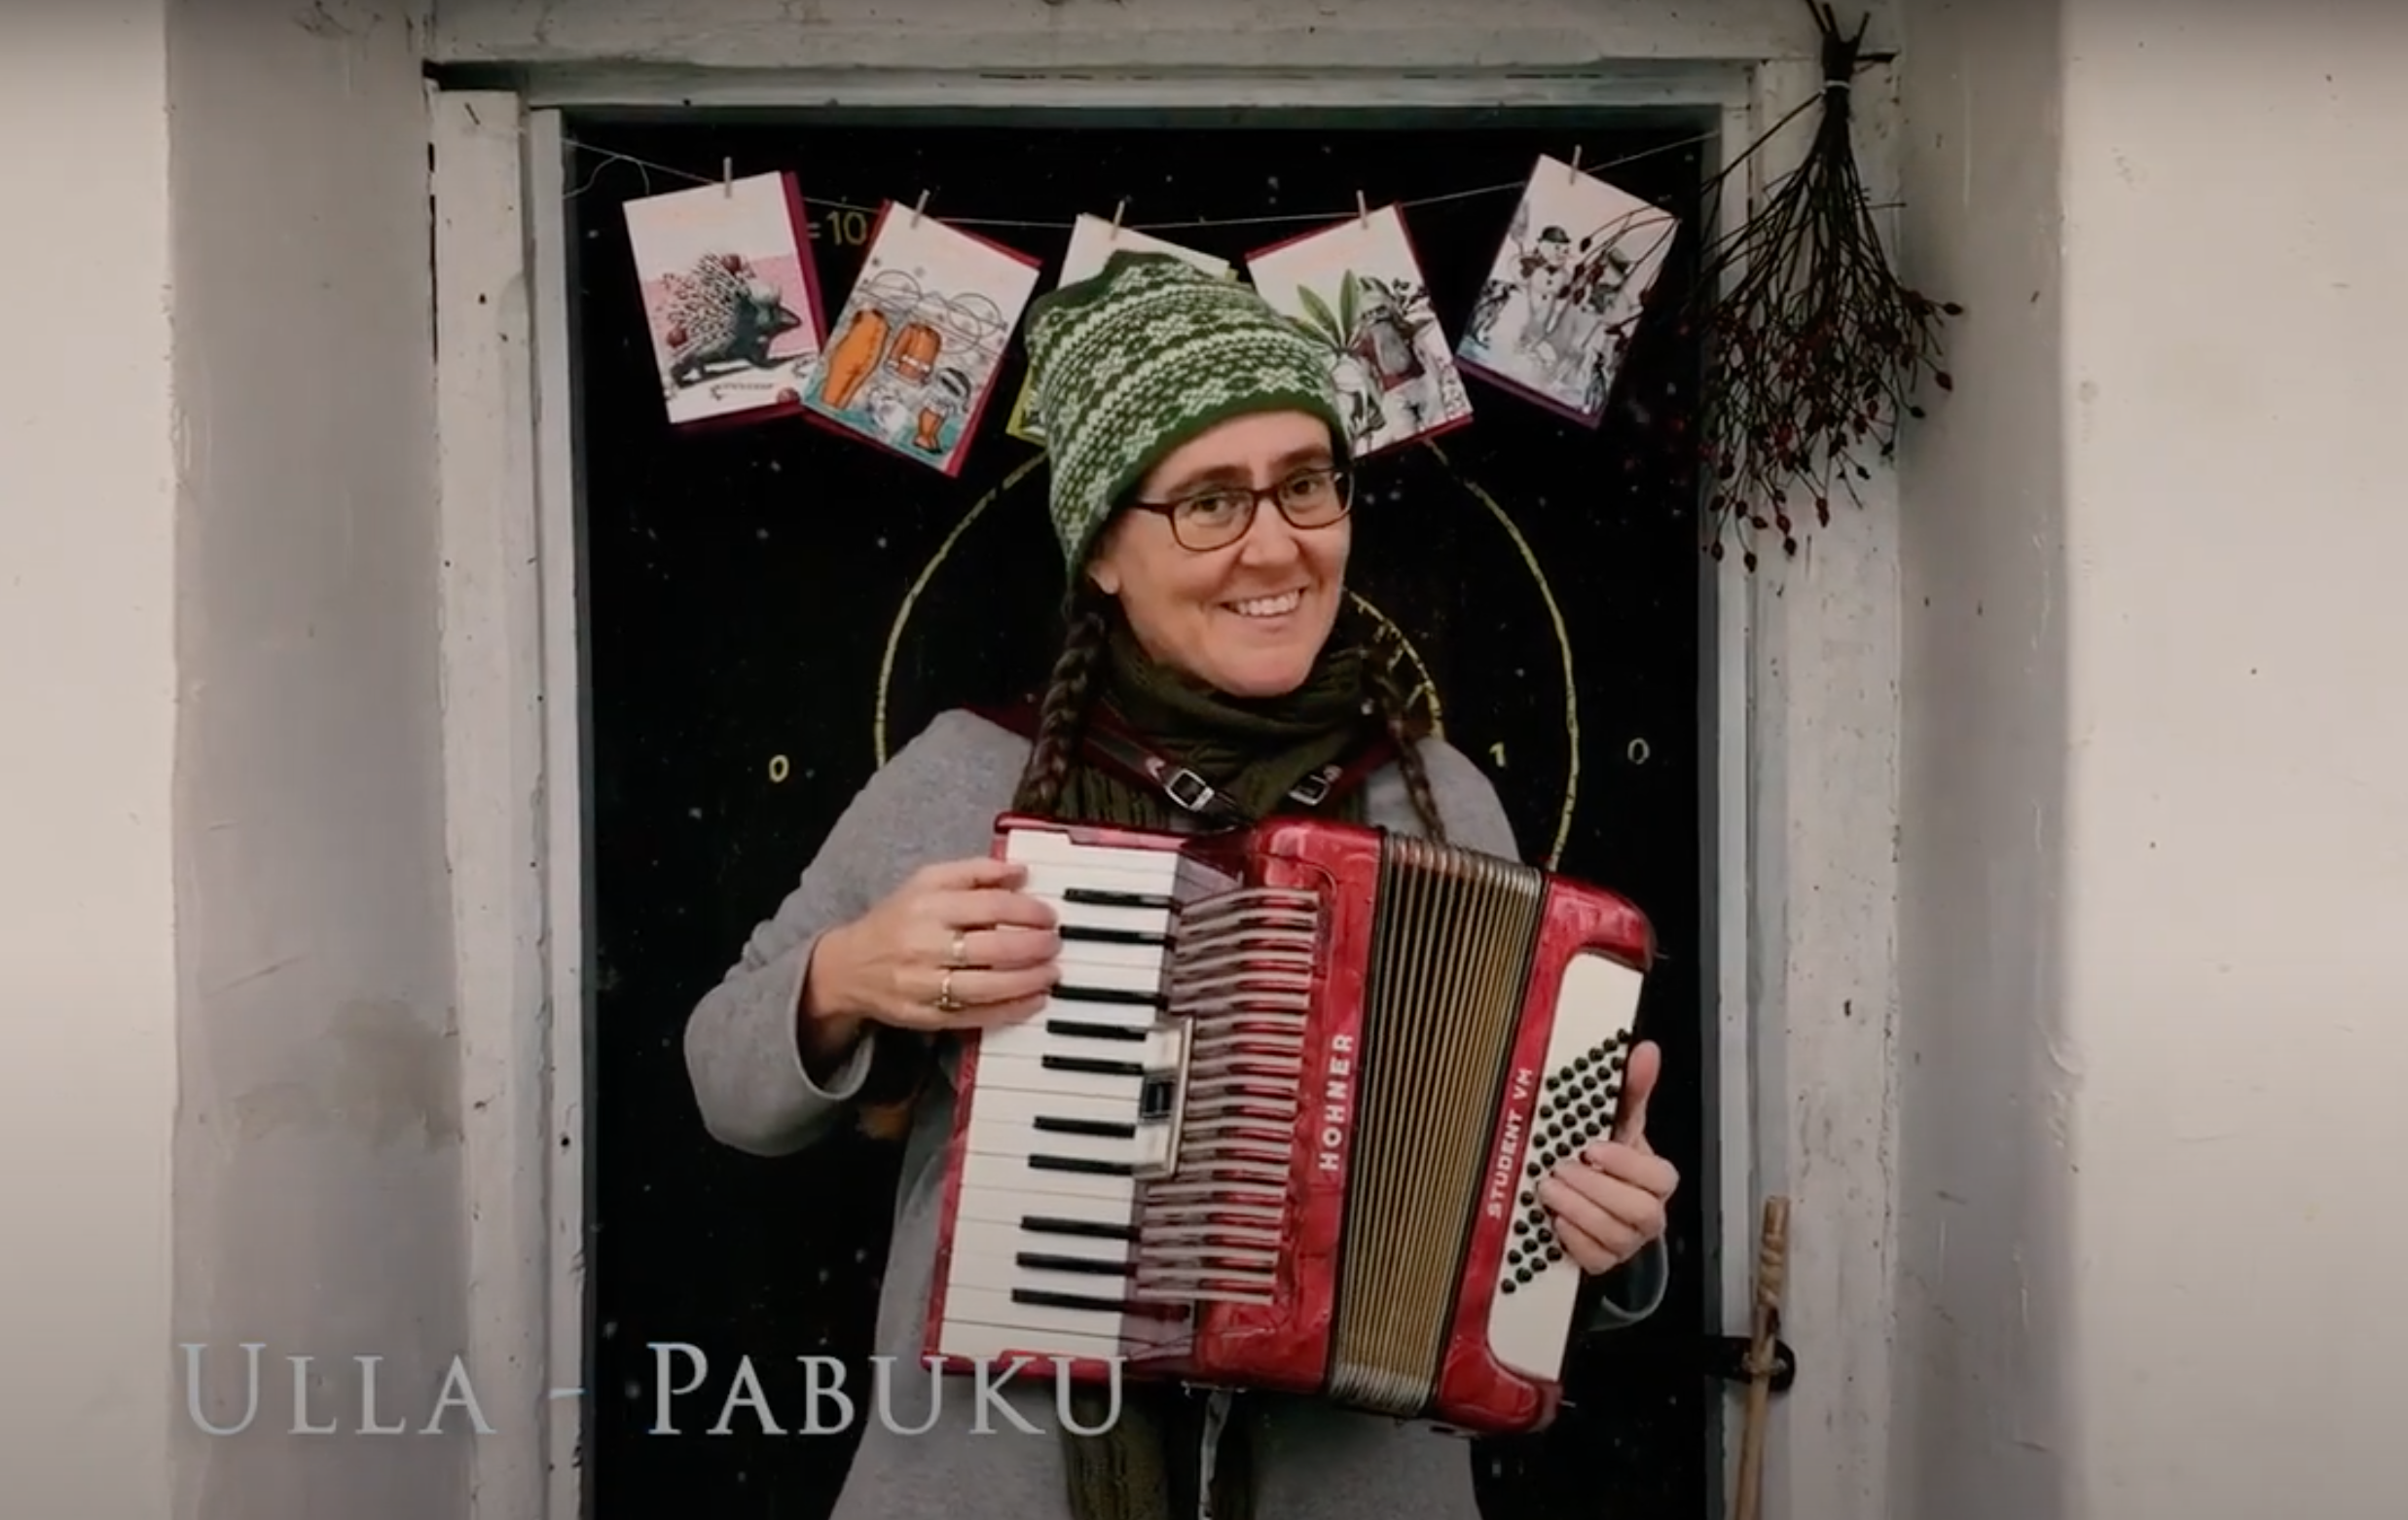 Above: Some extra musical accompaniment from Austria-based Ulla Klopf, co-owner of Pabuku.